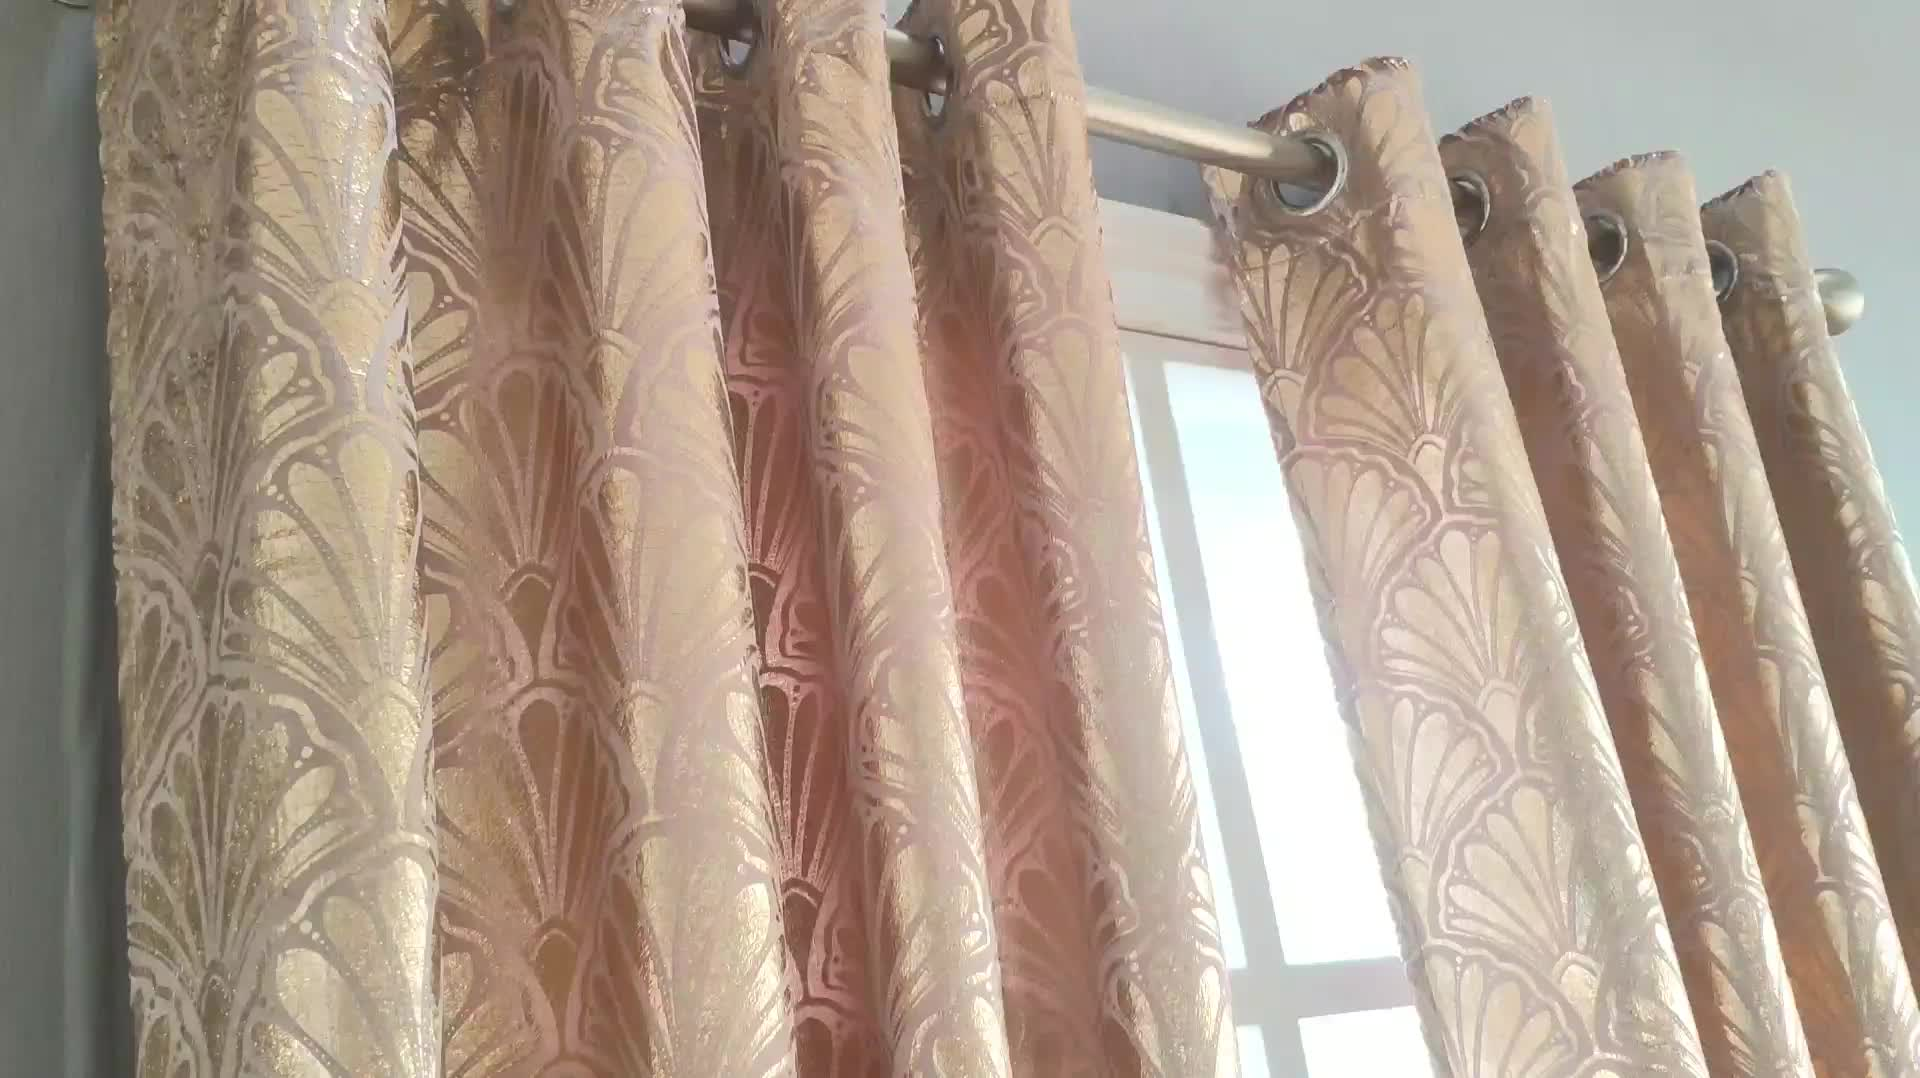 Luxury European Curtains for Living Room Velvet Curtains Gold Print High Shading Window Curtains for Dining Room Bedroom